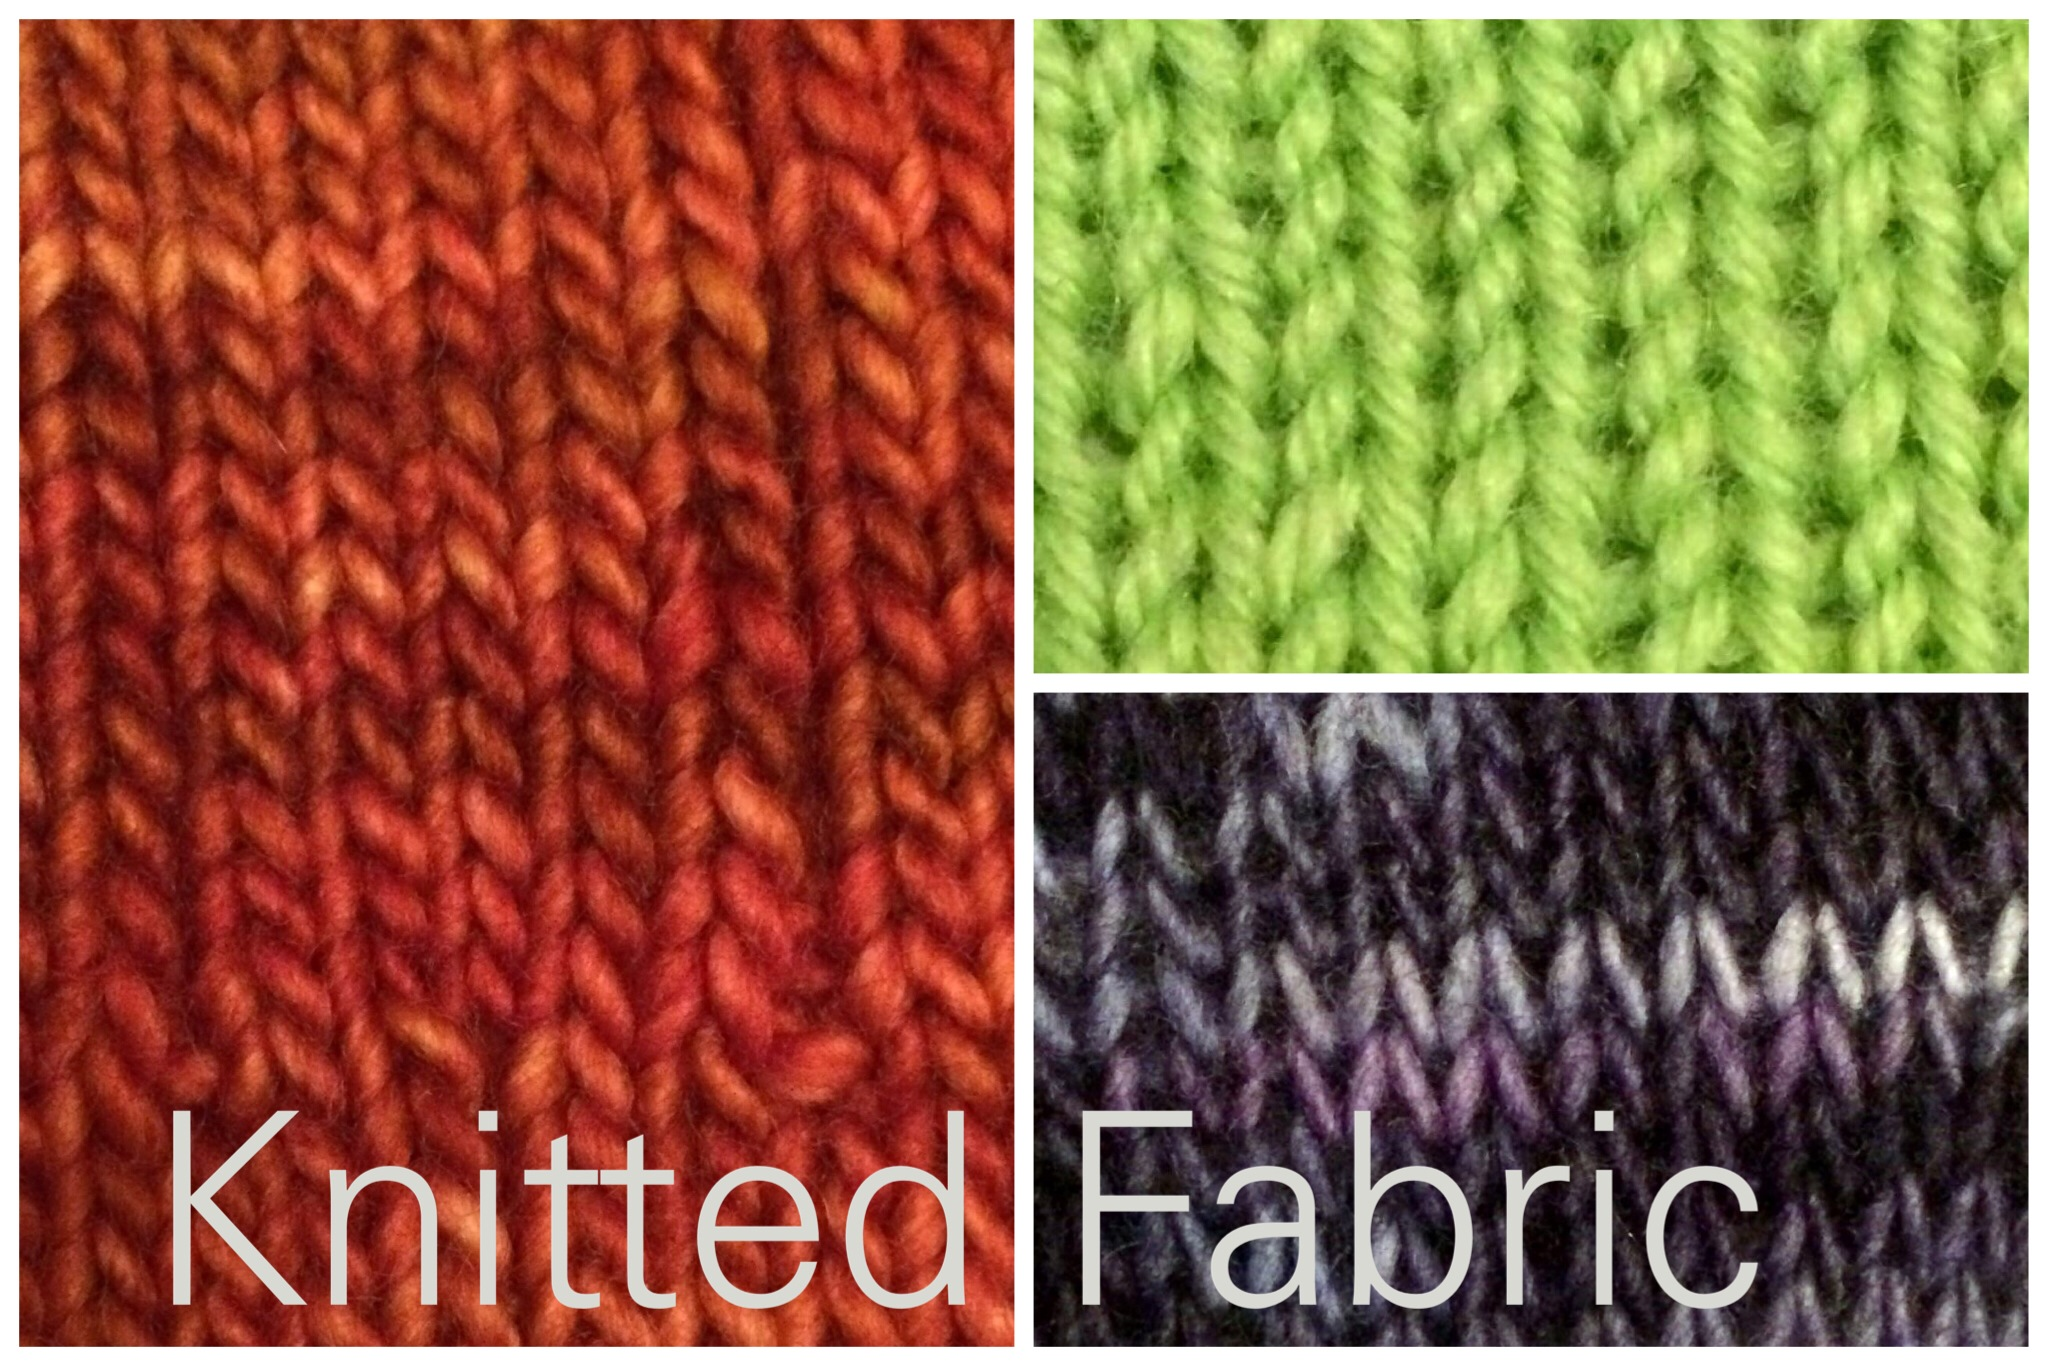 Knitting Fabric : Holly chayes what s the difference between knit and